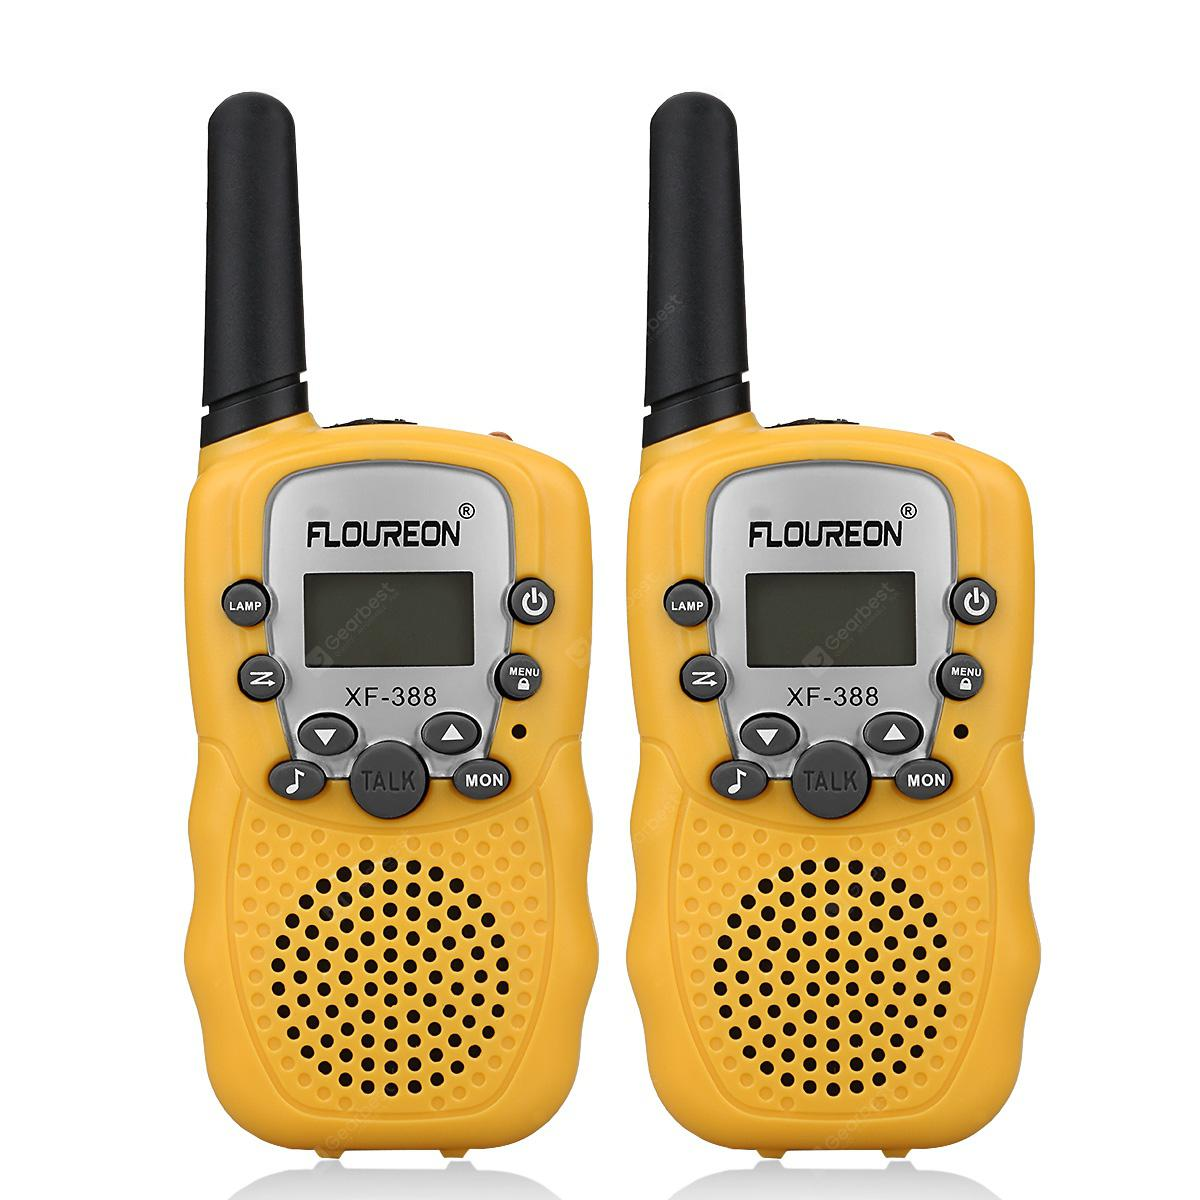 FLOUREON 8 Channel Walkie Talkies UHF400-470MHz two-Way Radio 3 Km Range Yellow EU/UK - YELLOW